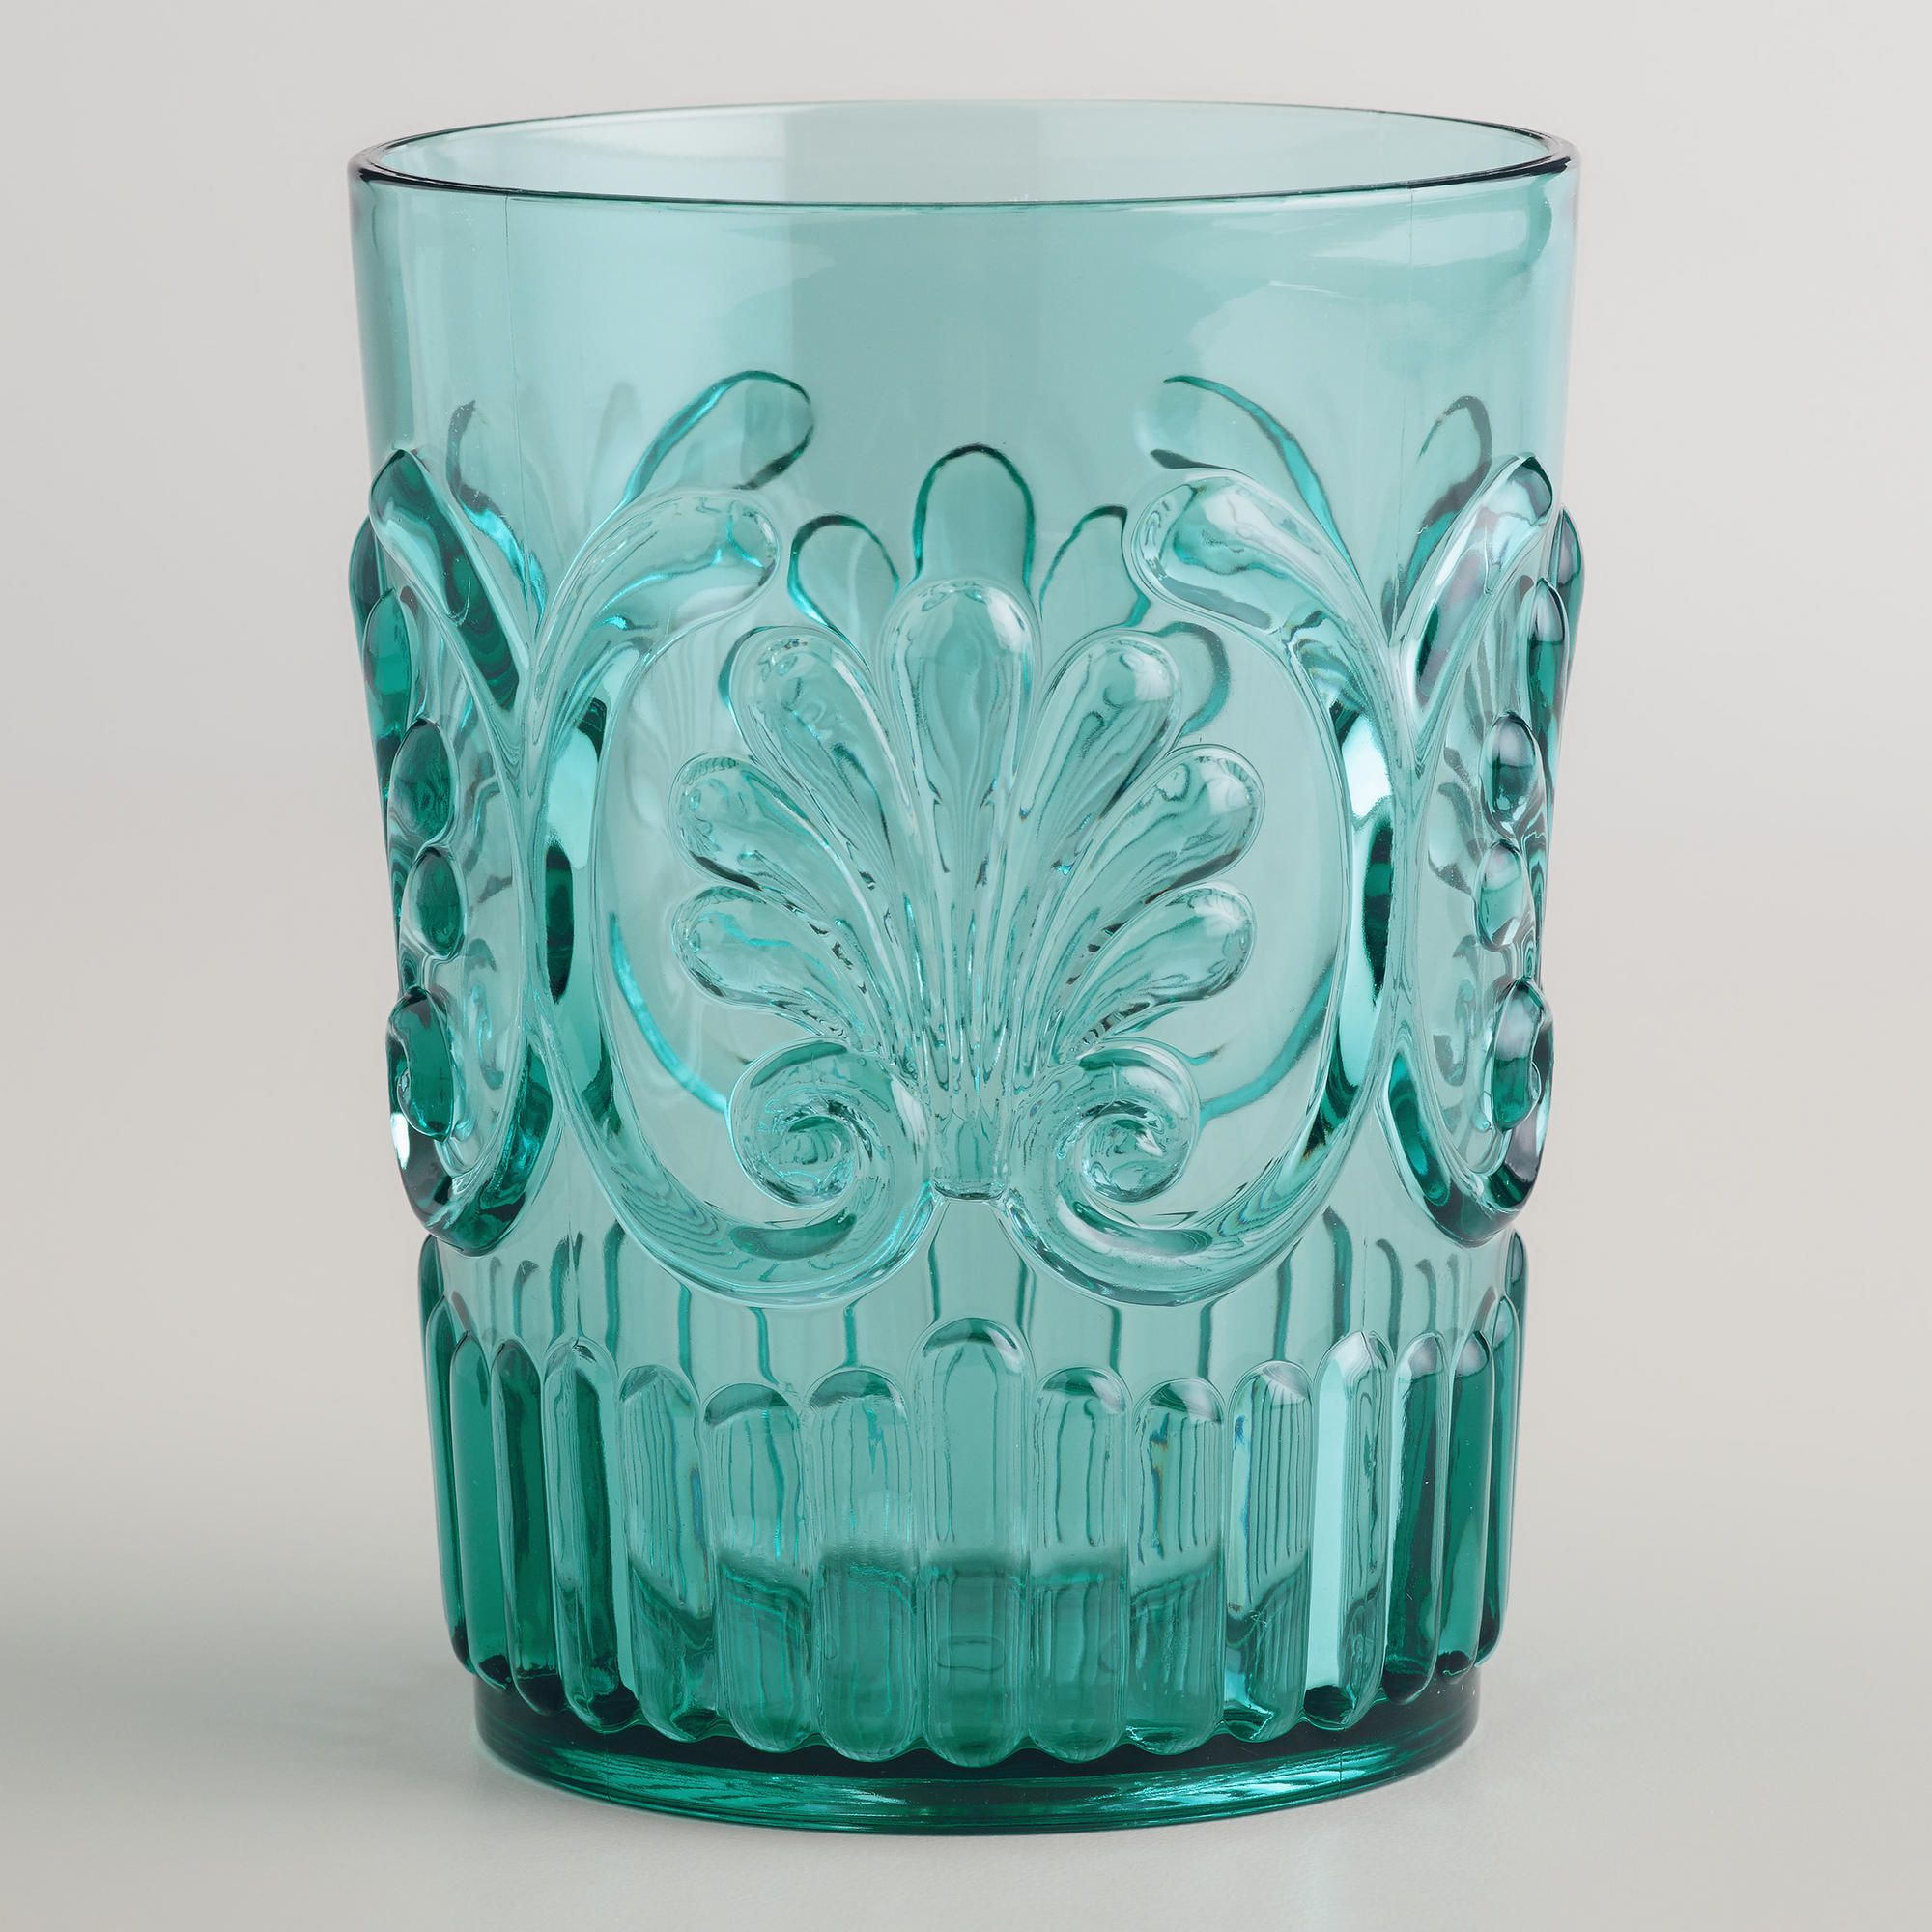 Marvelous Acrylic Glassware ( That Isnu0027t Tacky ) For Patio Dinning.